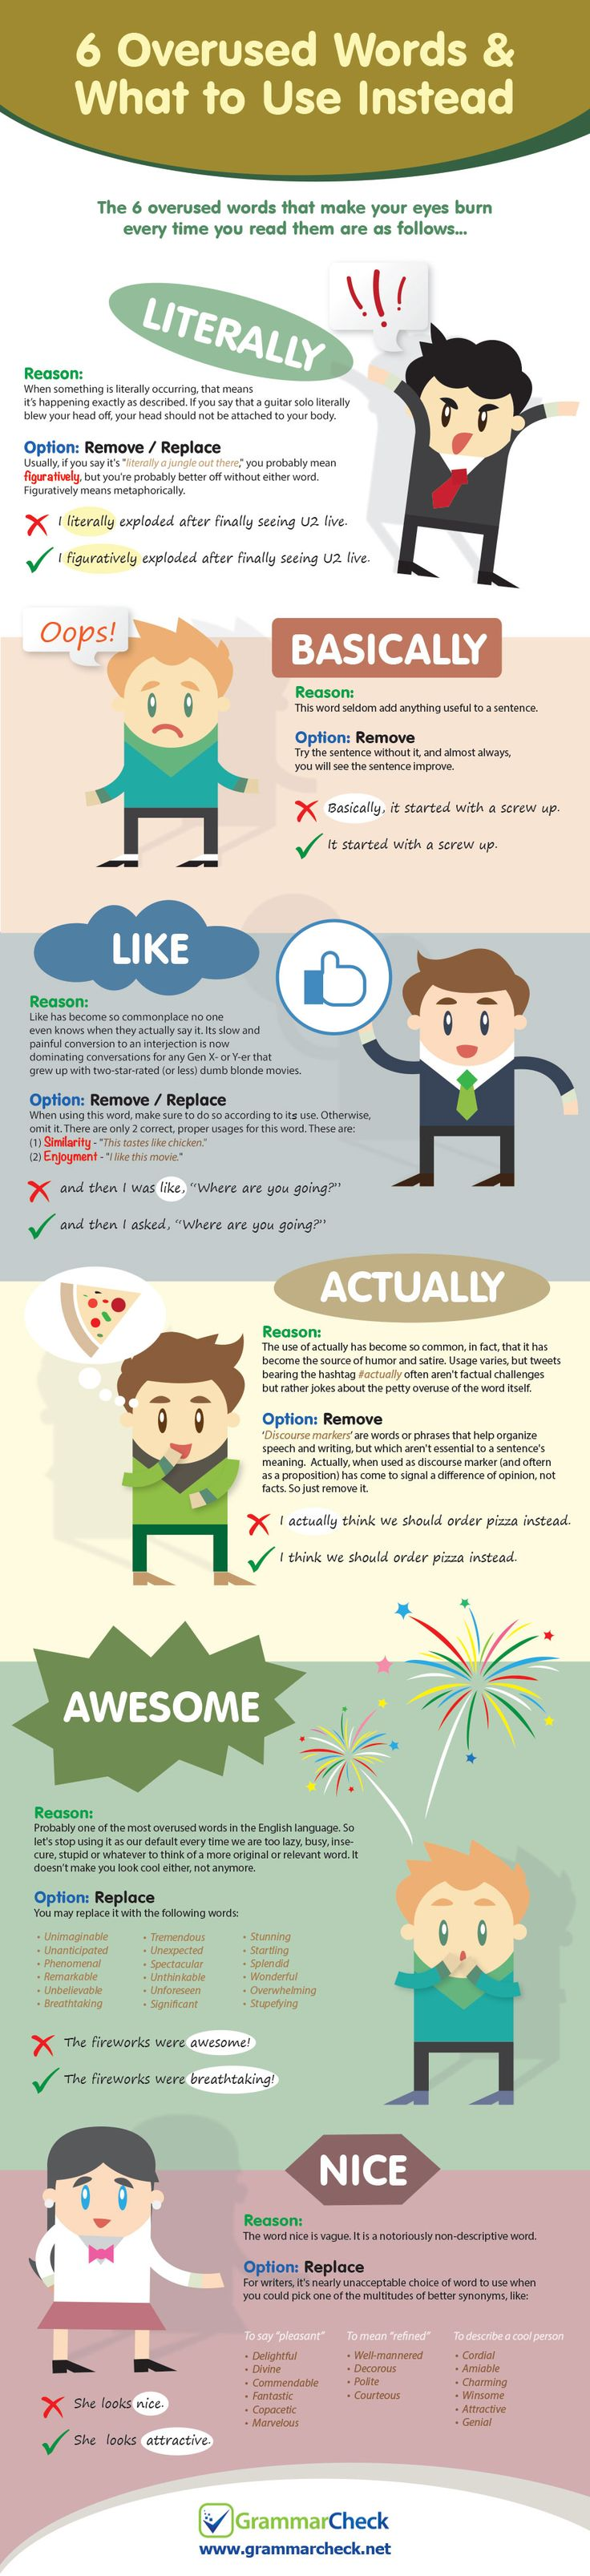 6 Overused Words & What to Use Instead (Infographic) #language #infographic